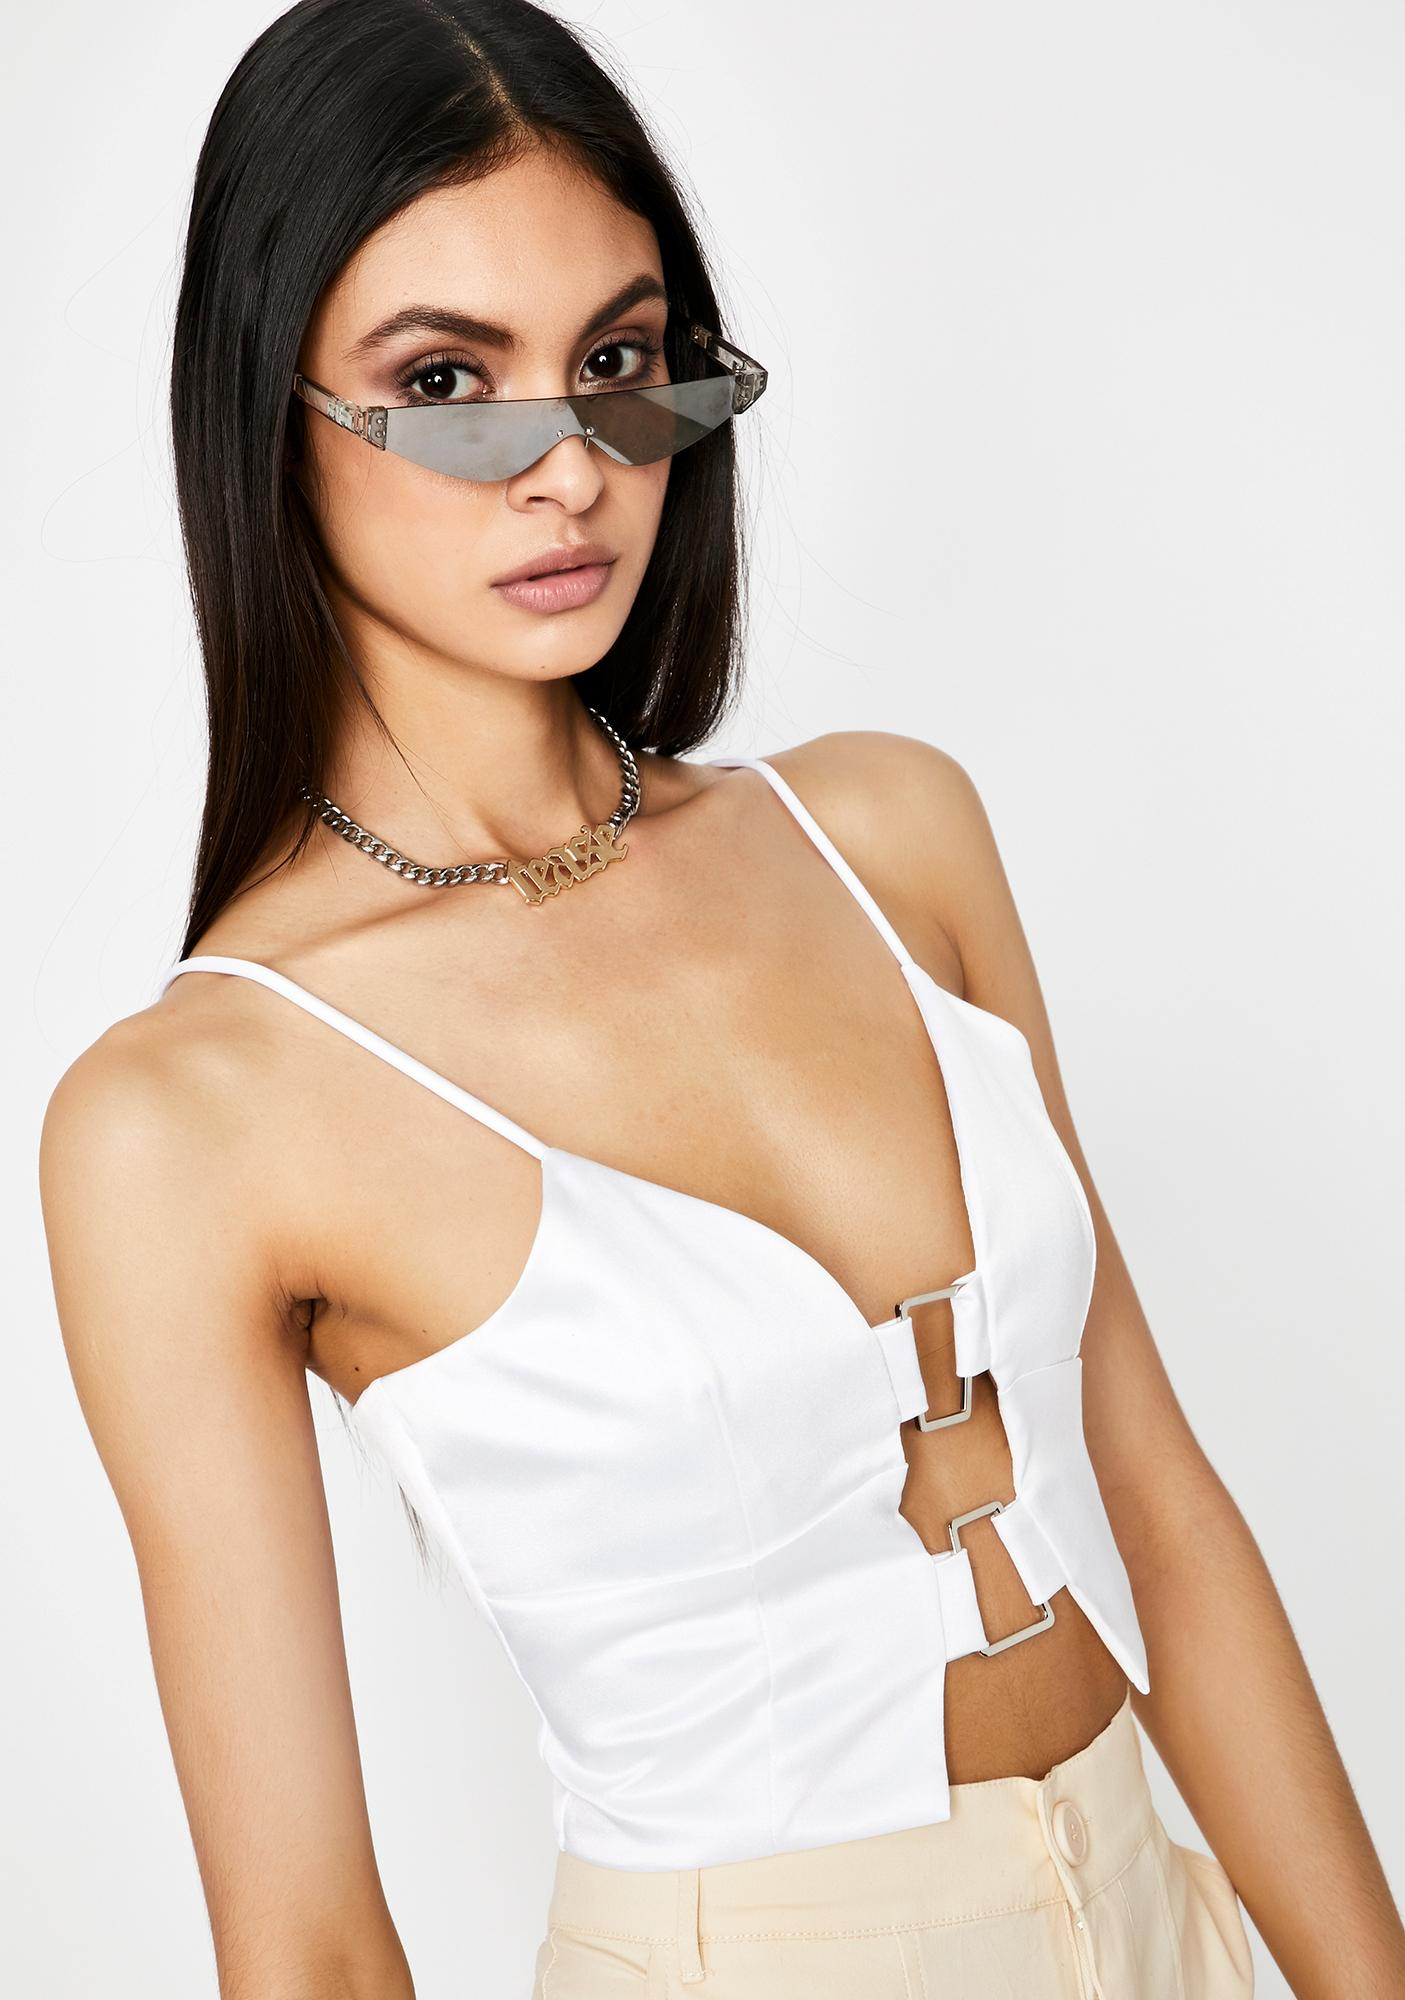 Icy Lose My Love Cut Out Top